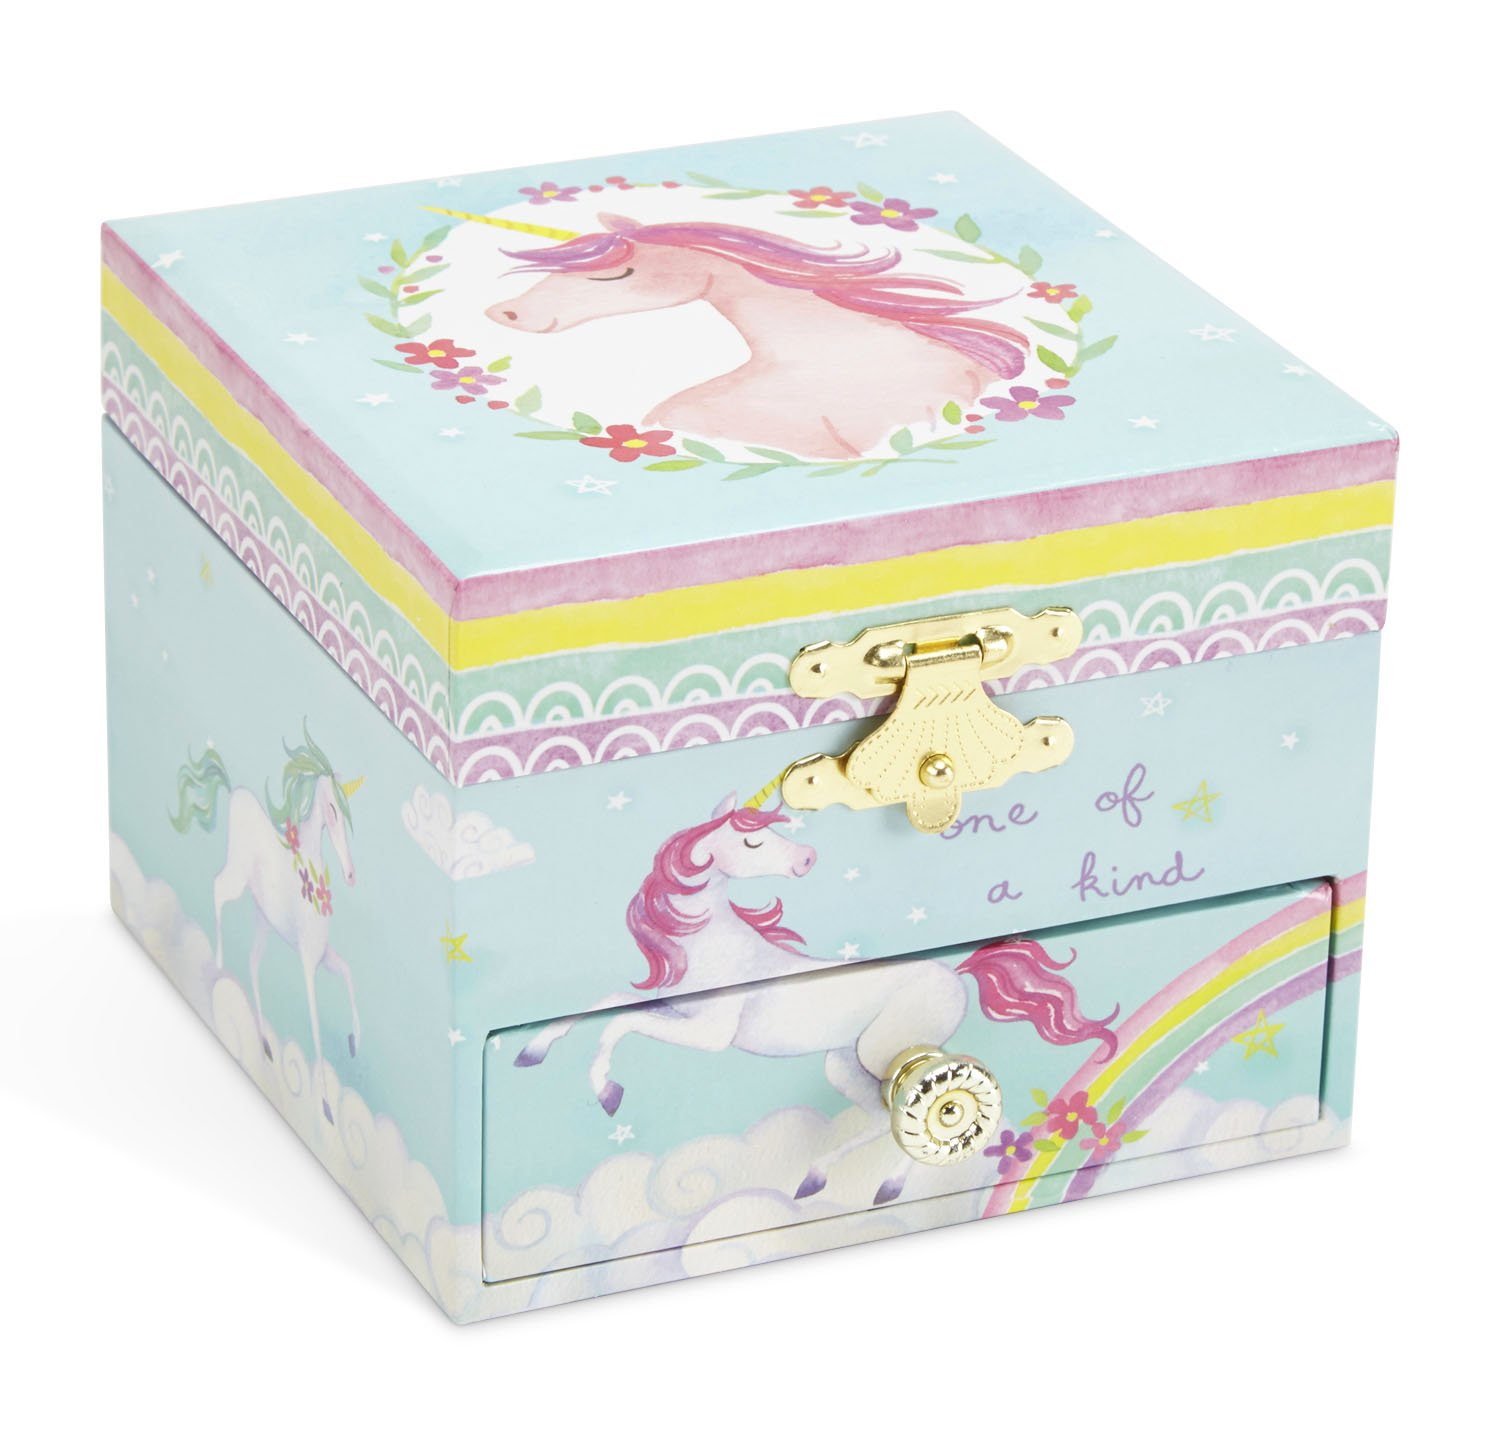 JewelKeeper Musical Jewelry Box, Unicorn Rainbow Design with Pullout Drawer, The Unicorn Tune by JewelKeeper (Image #2)